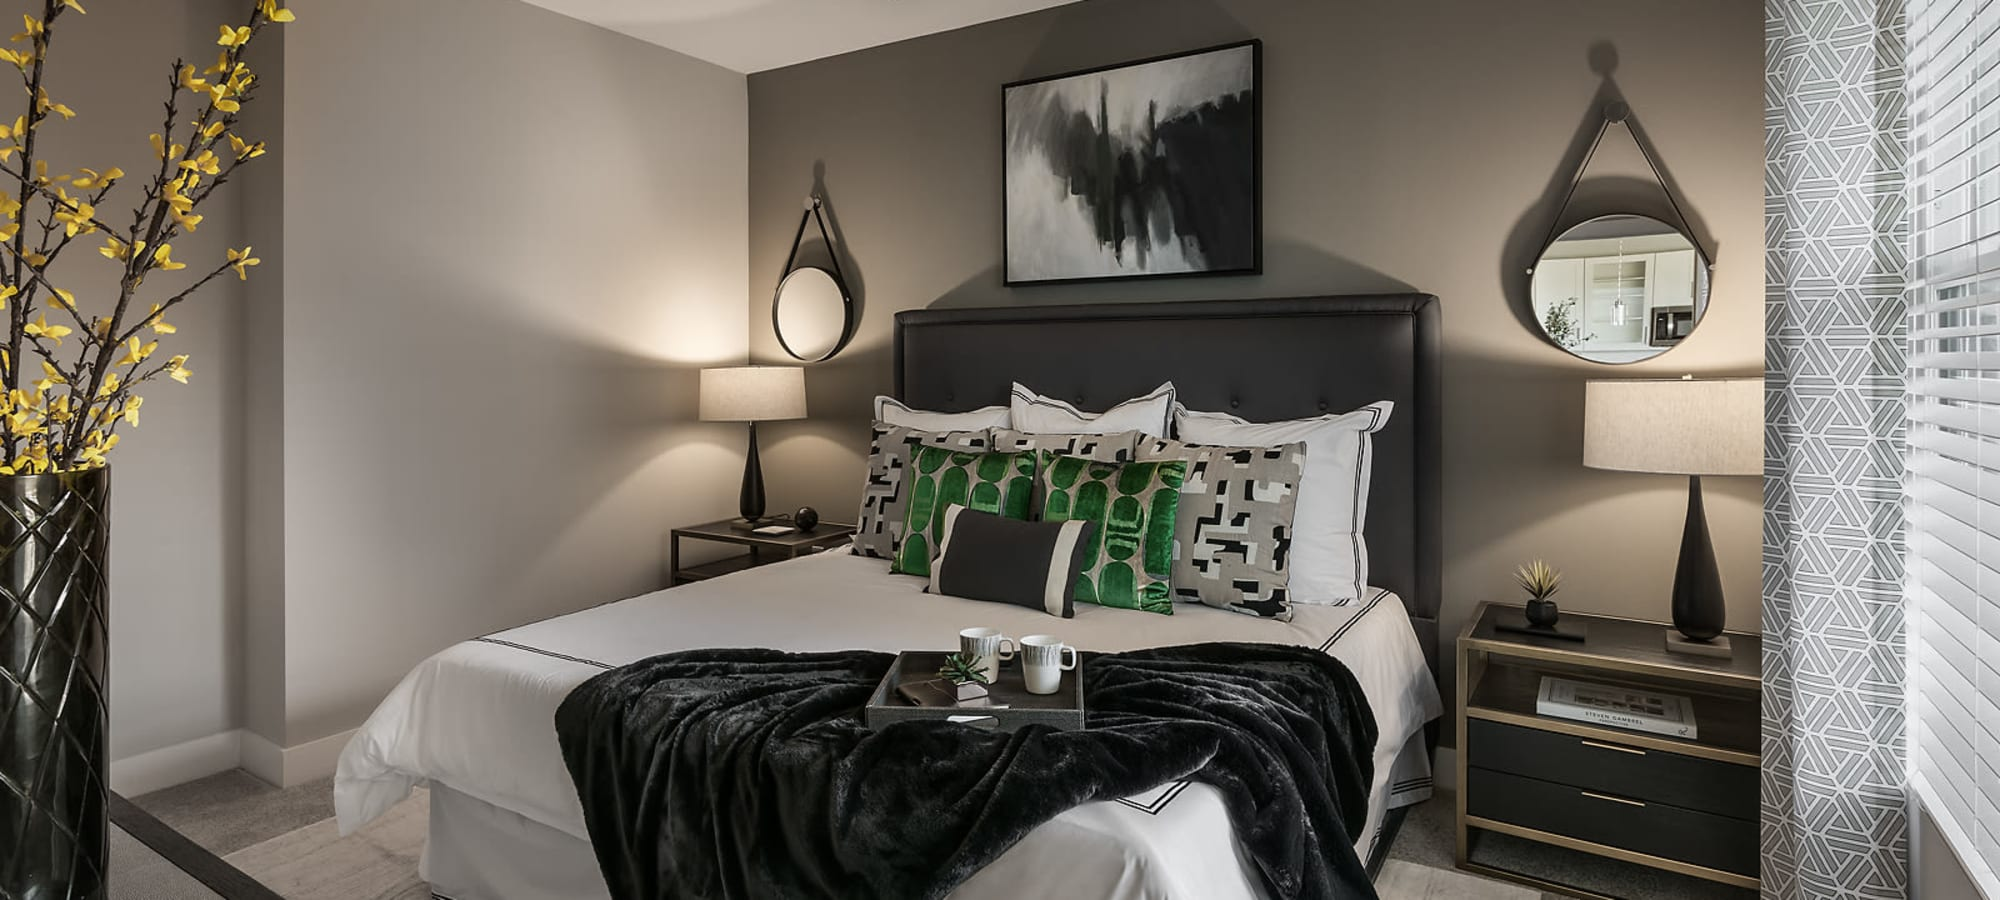 Comfortable bedroom at The Halsten at Chauncey Lane in Scottsdale, Arizona